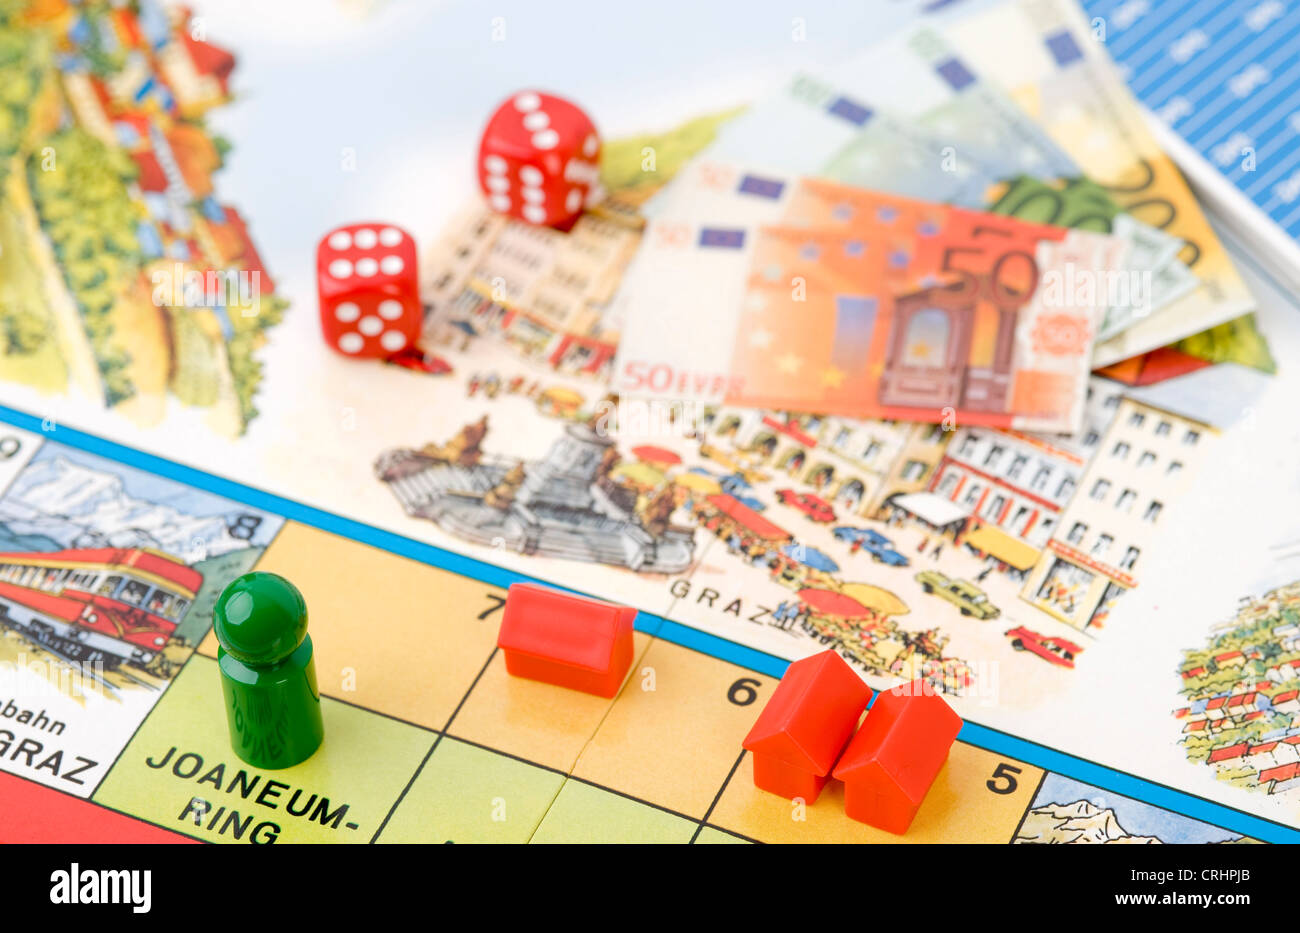 Board Game Dkt Austria Stock Photo 48948771 Alamy Circuit Games